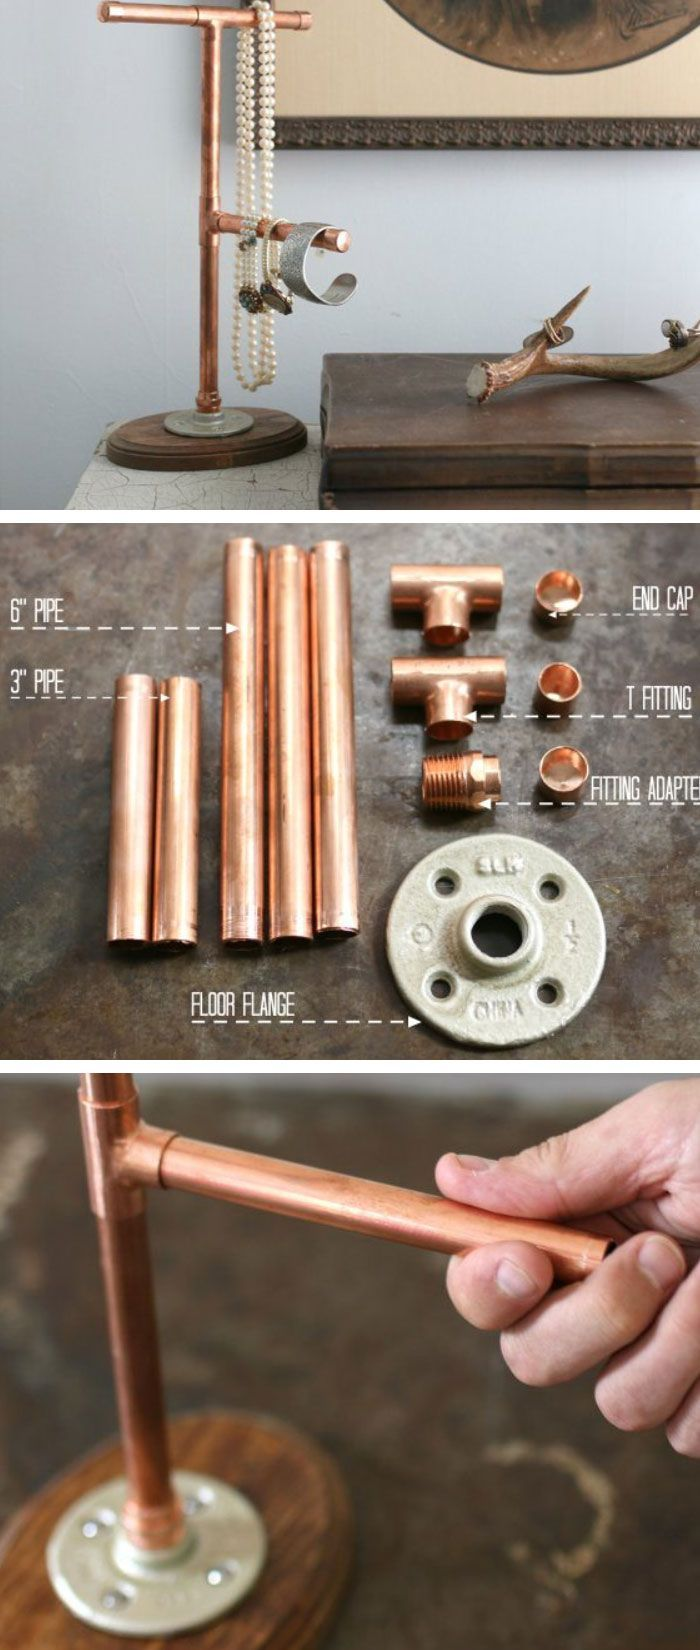 Copper Jewelry Display DIY Home Decor Ideas on a Budget DIY